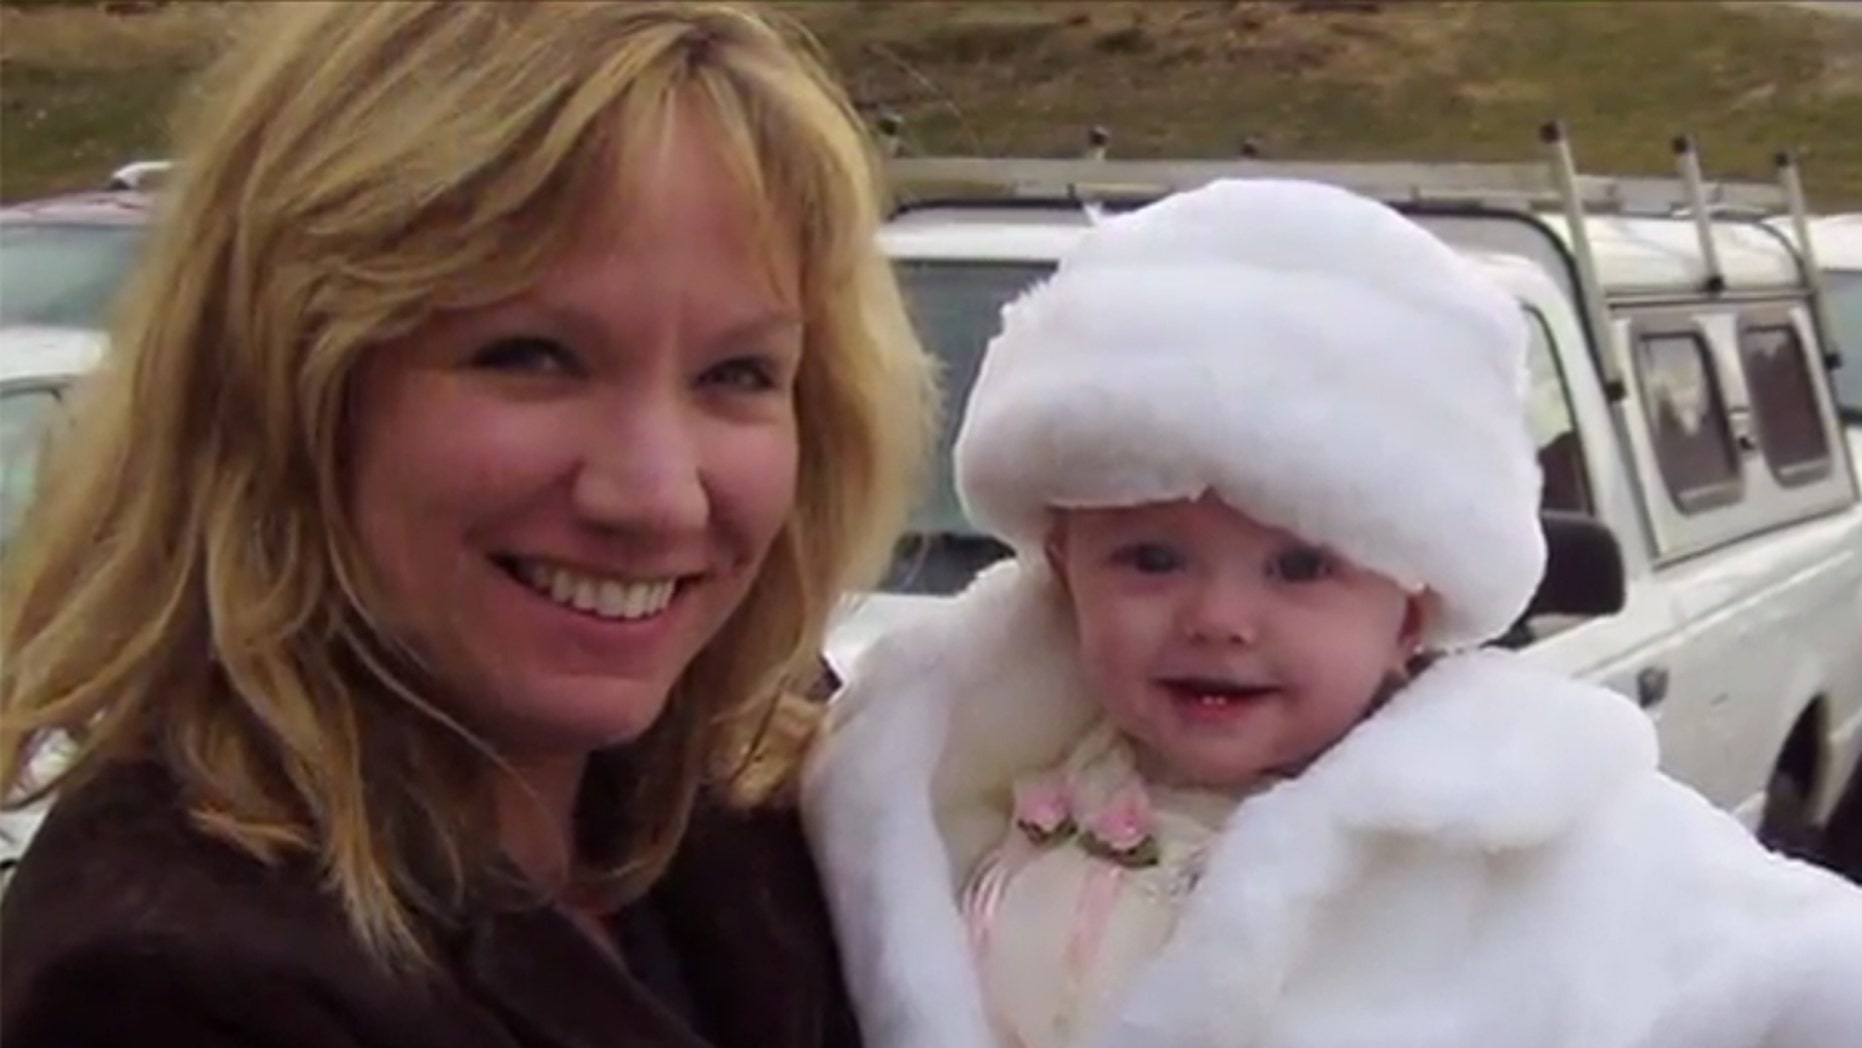 Dr. Christine Finck and the Isabelle, the baby she adopted nearly 13 years ago.